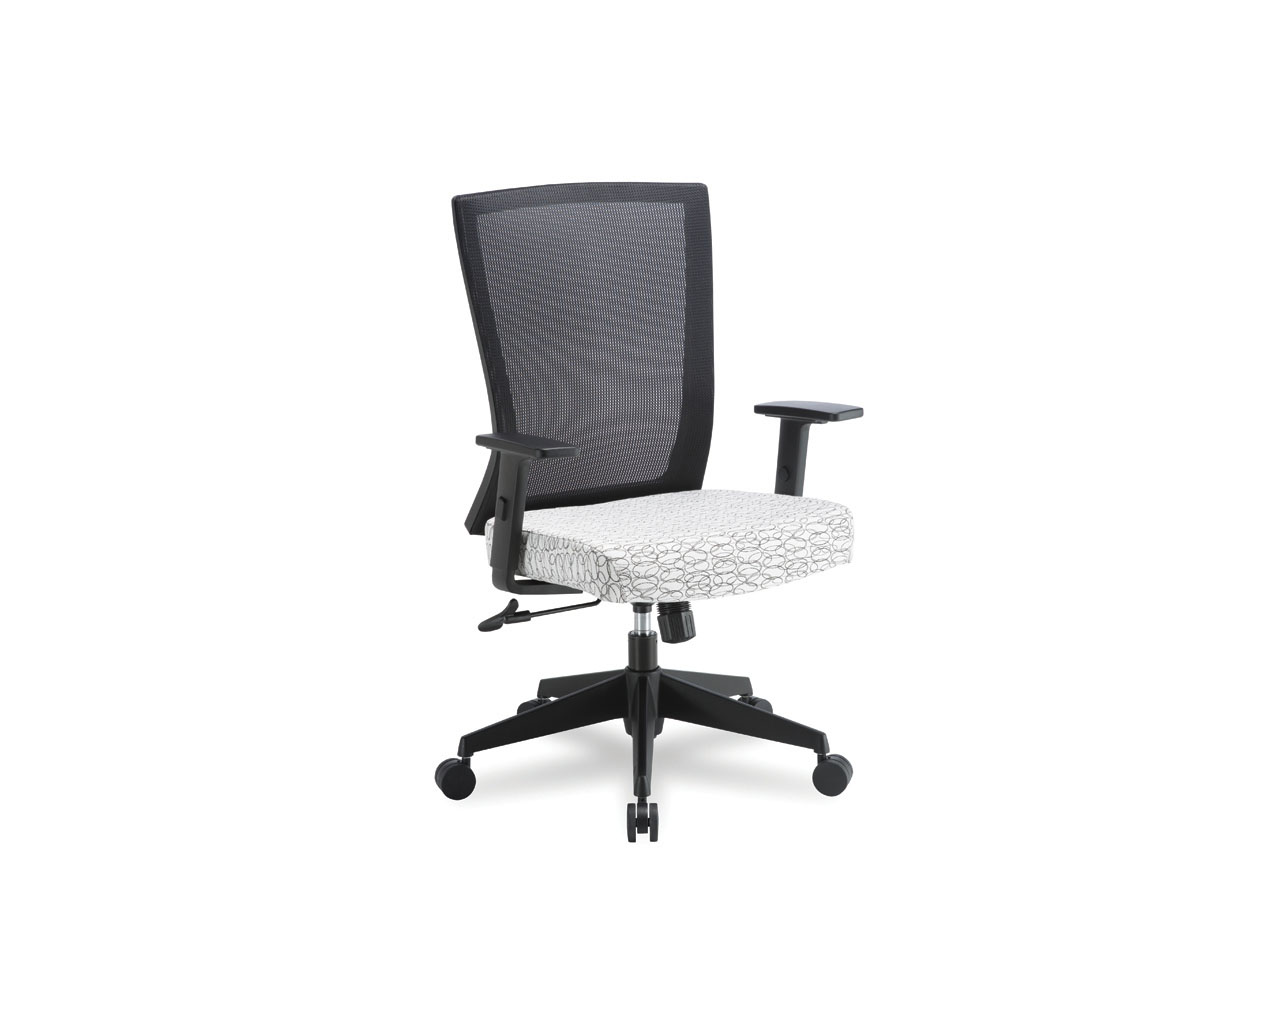 Espit Mid Back Chair in White Ovali Fabric